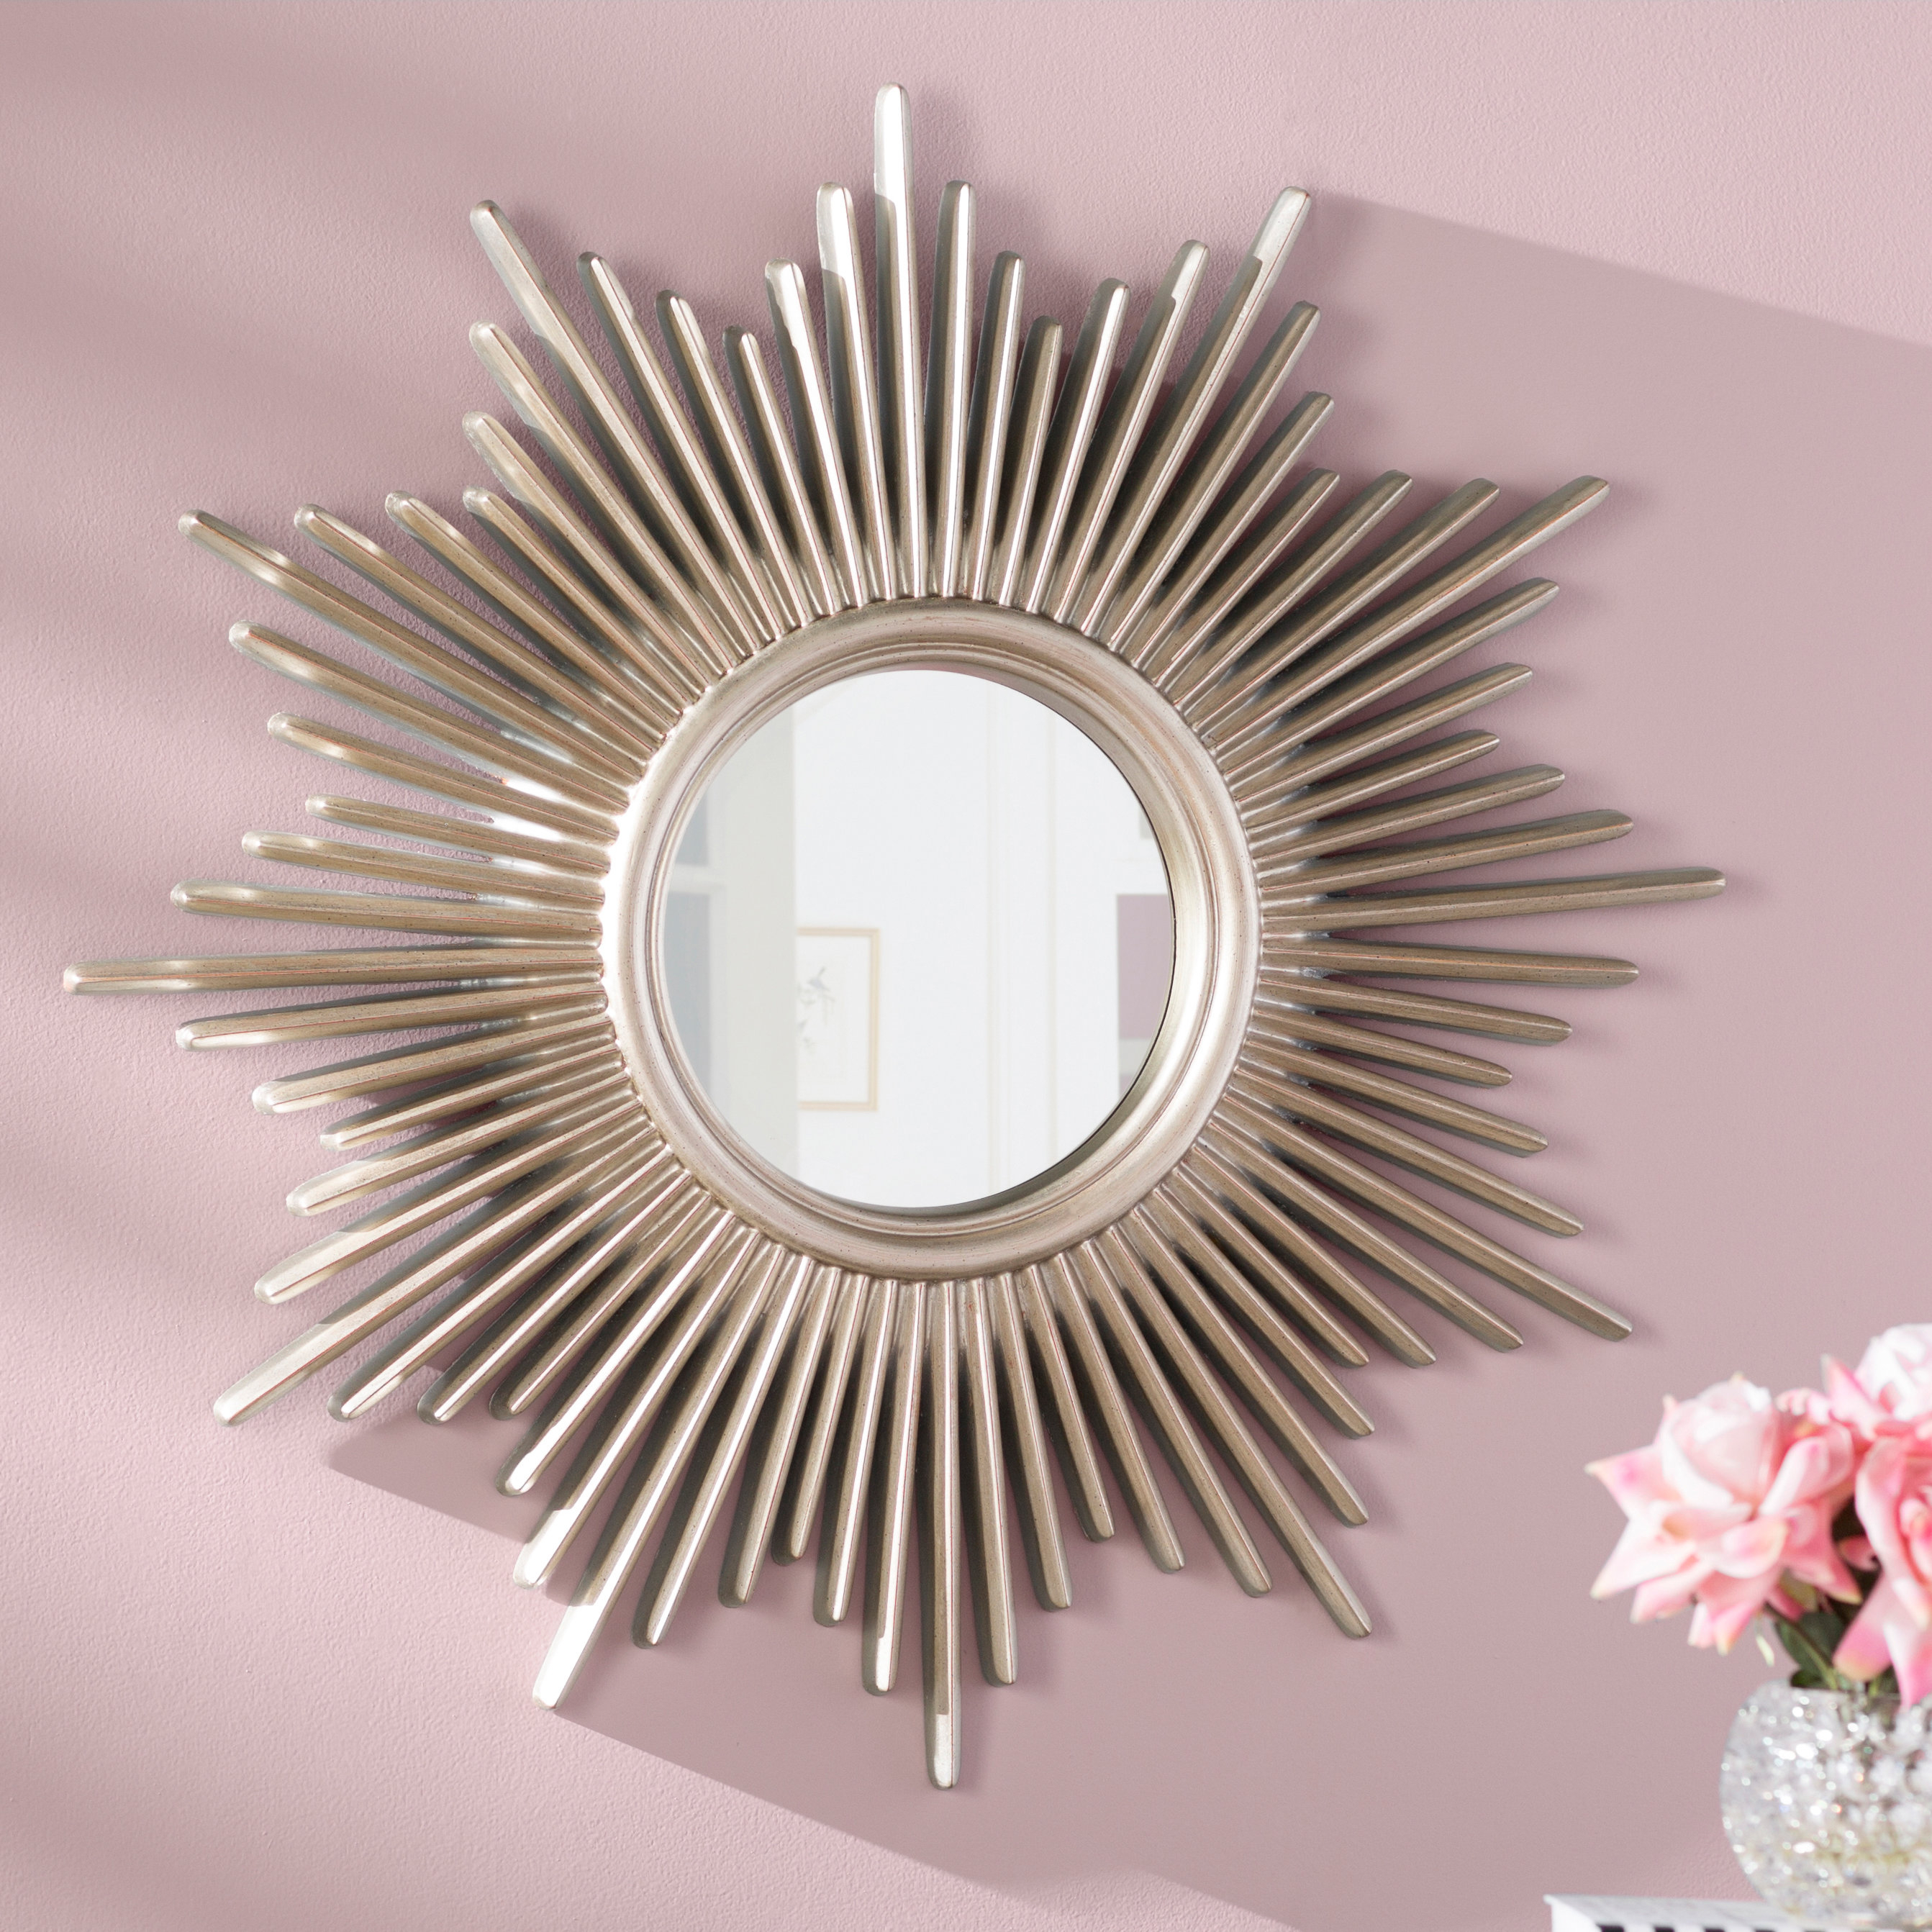 Josephson Starburst Glam Beveled Accent Wall Mirror Inside Brynn Accent Mirrors (View 19 of 30)